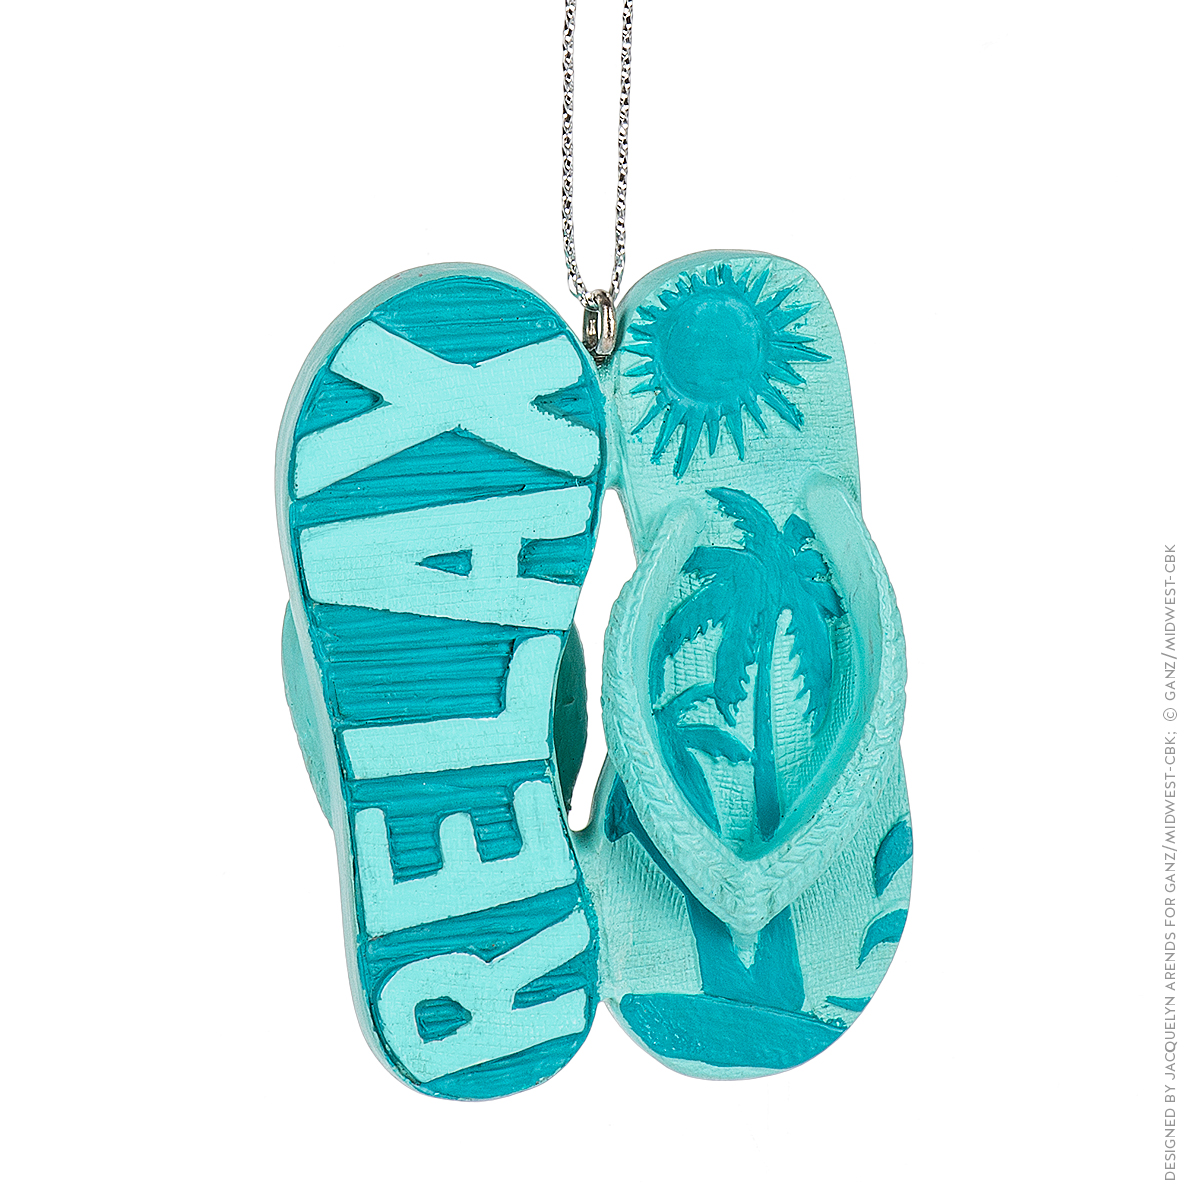 "Specialty Ornaments ""Relax"" Flip Flops ornament by Jacquelyn Arends; © Ganz/Midwest-CBK 2019"